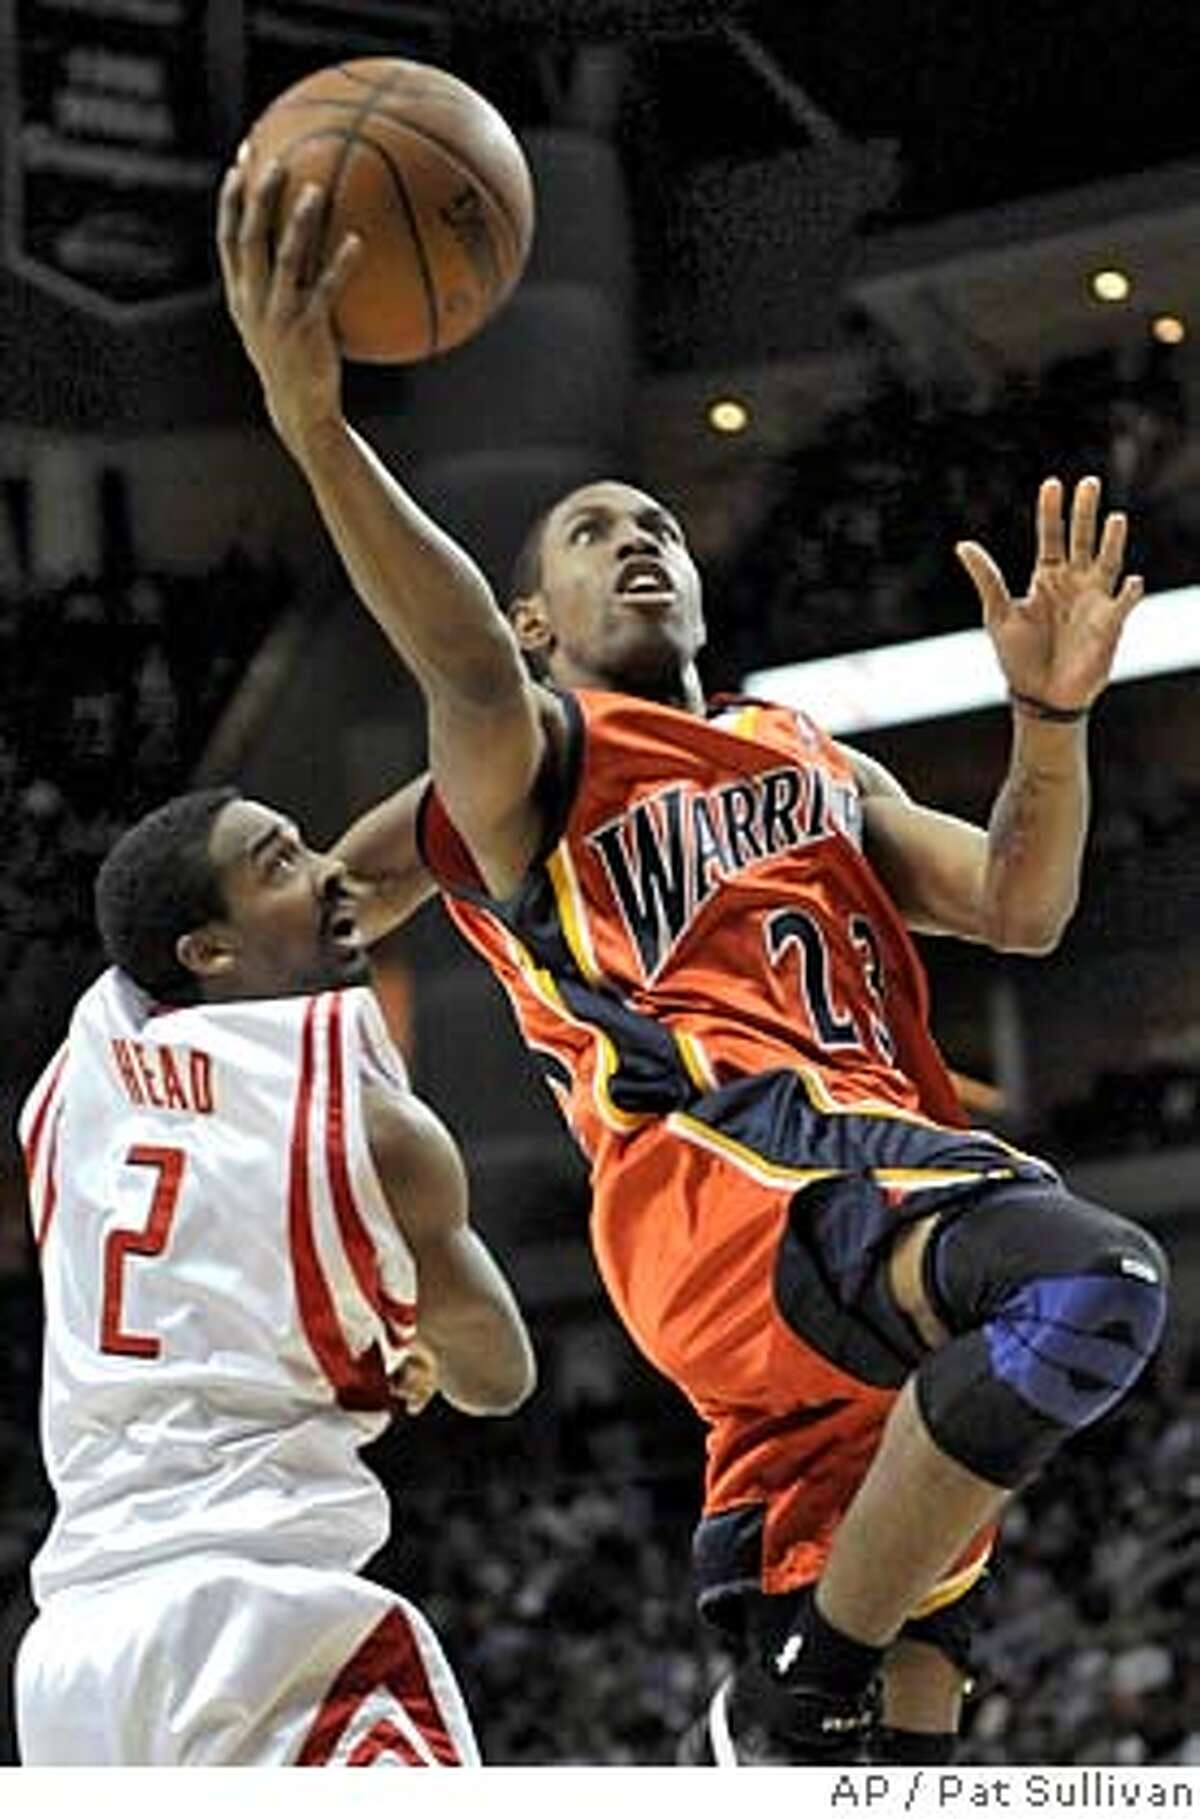 Golden State Warriors' C.J. Watson (23) goes for two points over Houston Rockets defender Luther Head (2) during the first half of a basketball game Tuesday, Jan. 29, 2008 in Houston. (AP Photo/Pat Sullivan) EFE OUT